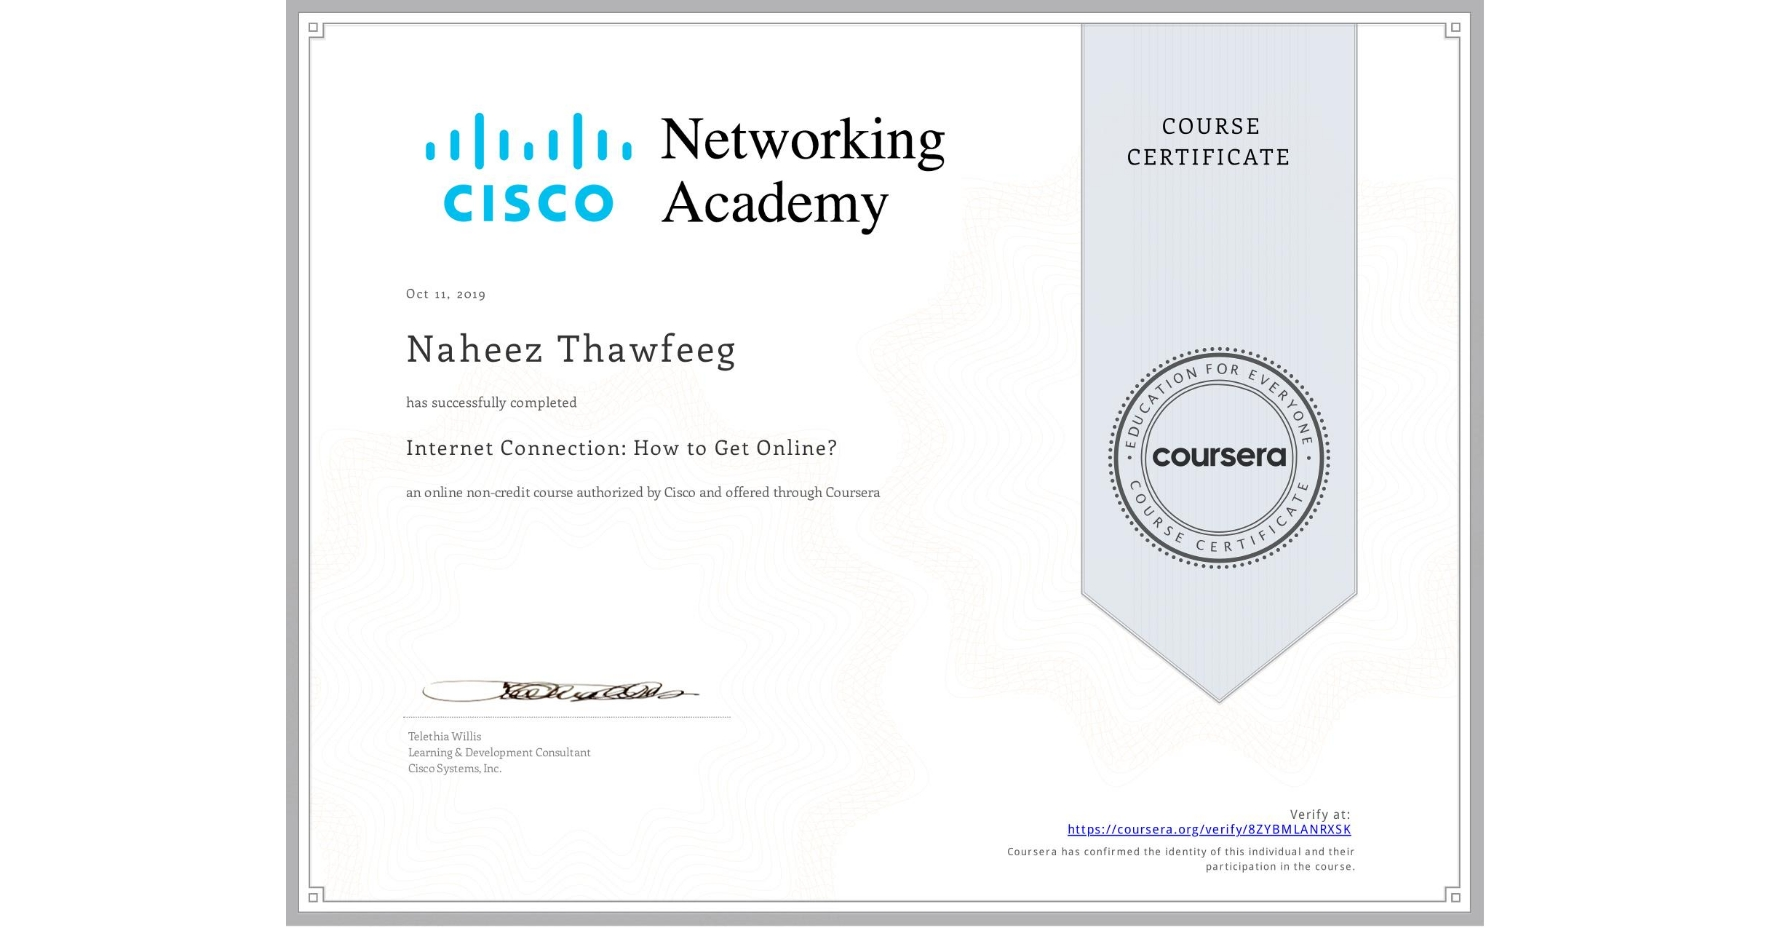 View certificate for Naheez Thawfeeg, Internet Connection: How to Get Online?, an online non-credit course authorized by Cisco and offered through Coursera